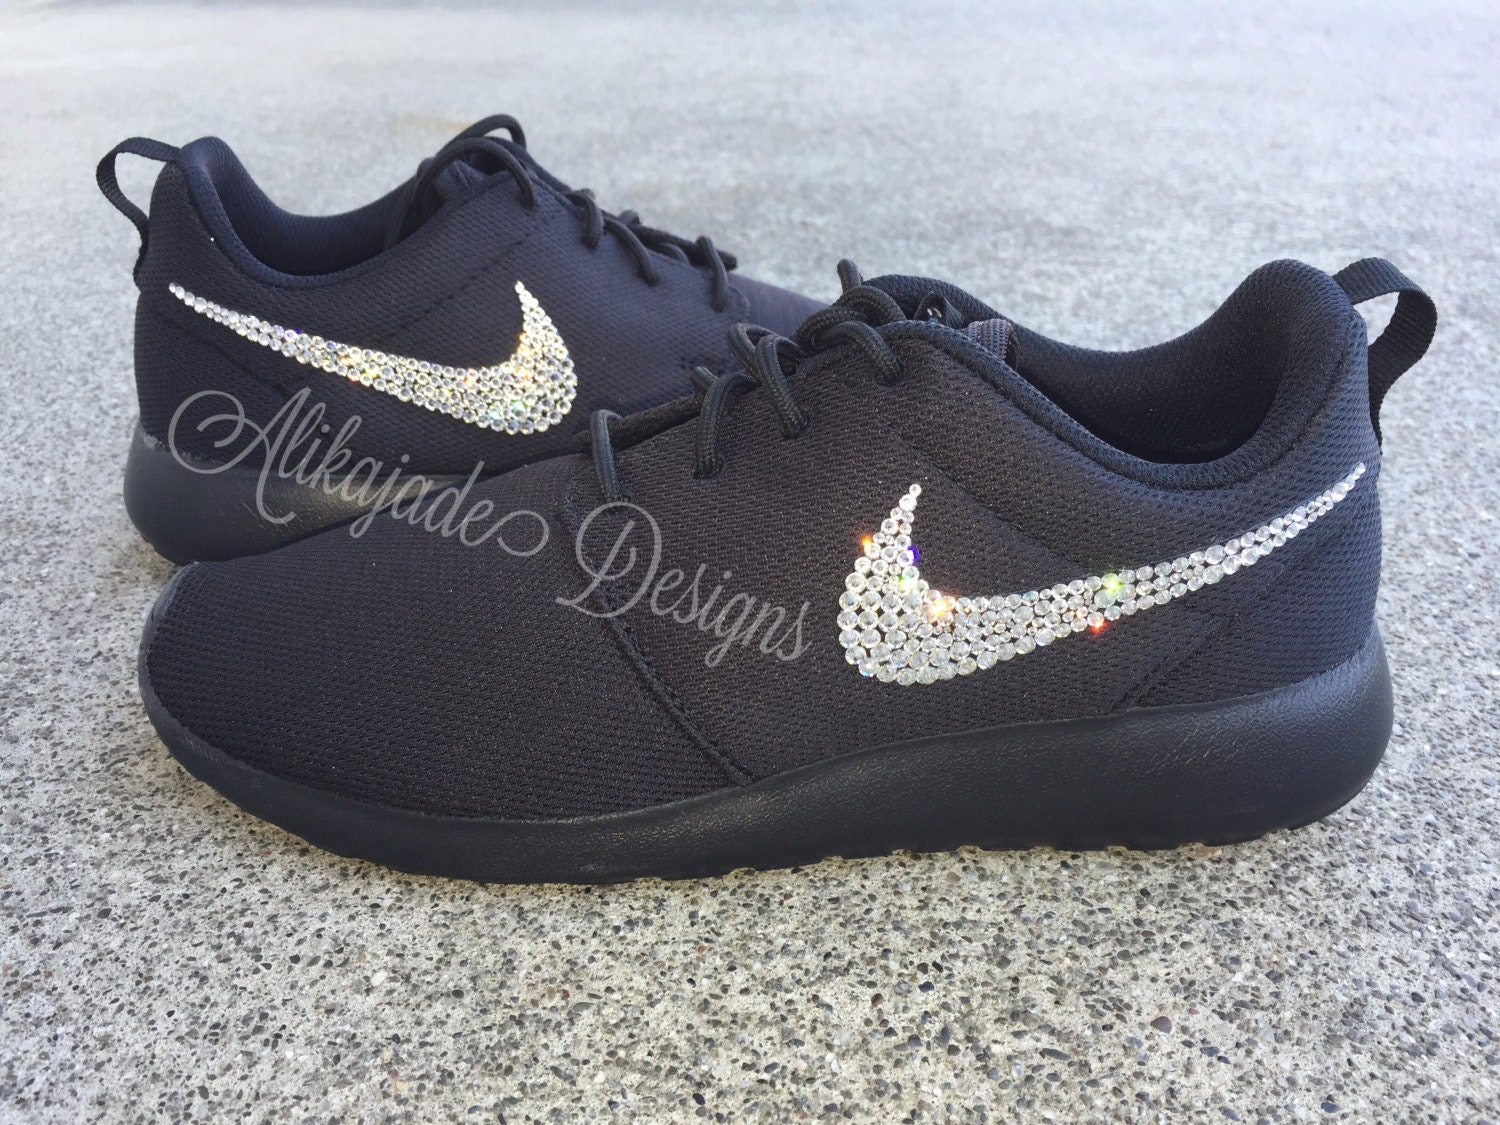 Swarovski Women s Black NIKE Roshe ONE or TWO with Clear Crystals- Wedding  Shoe- Gift for Her. gallery photo gallery photo gallery photo fc441f27df